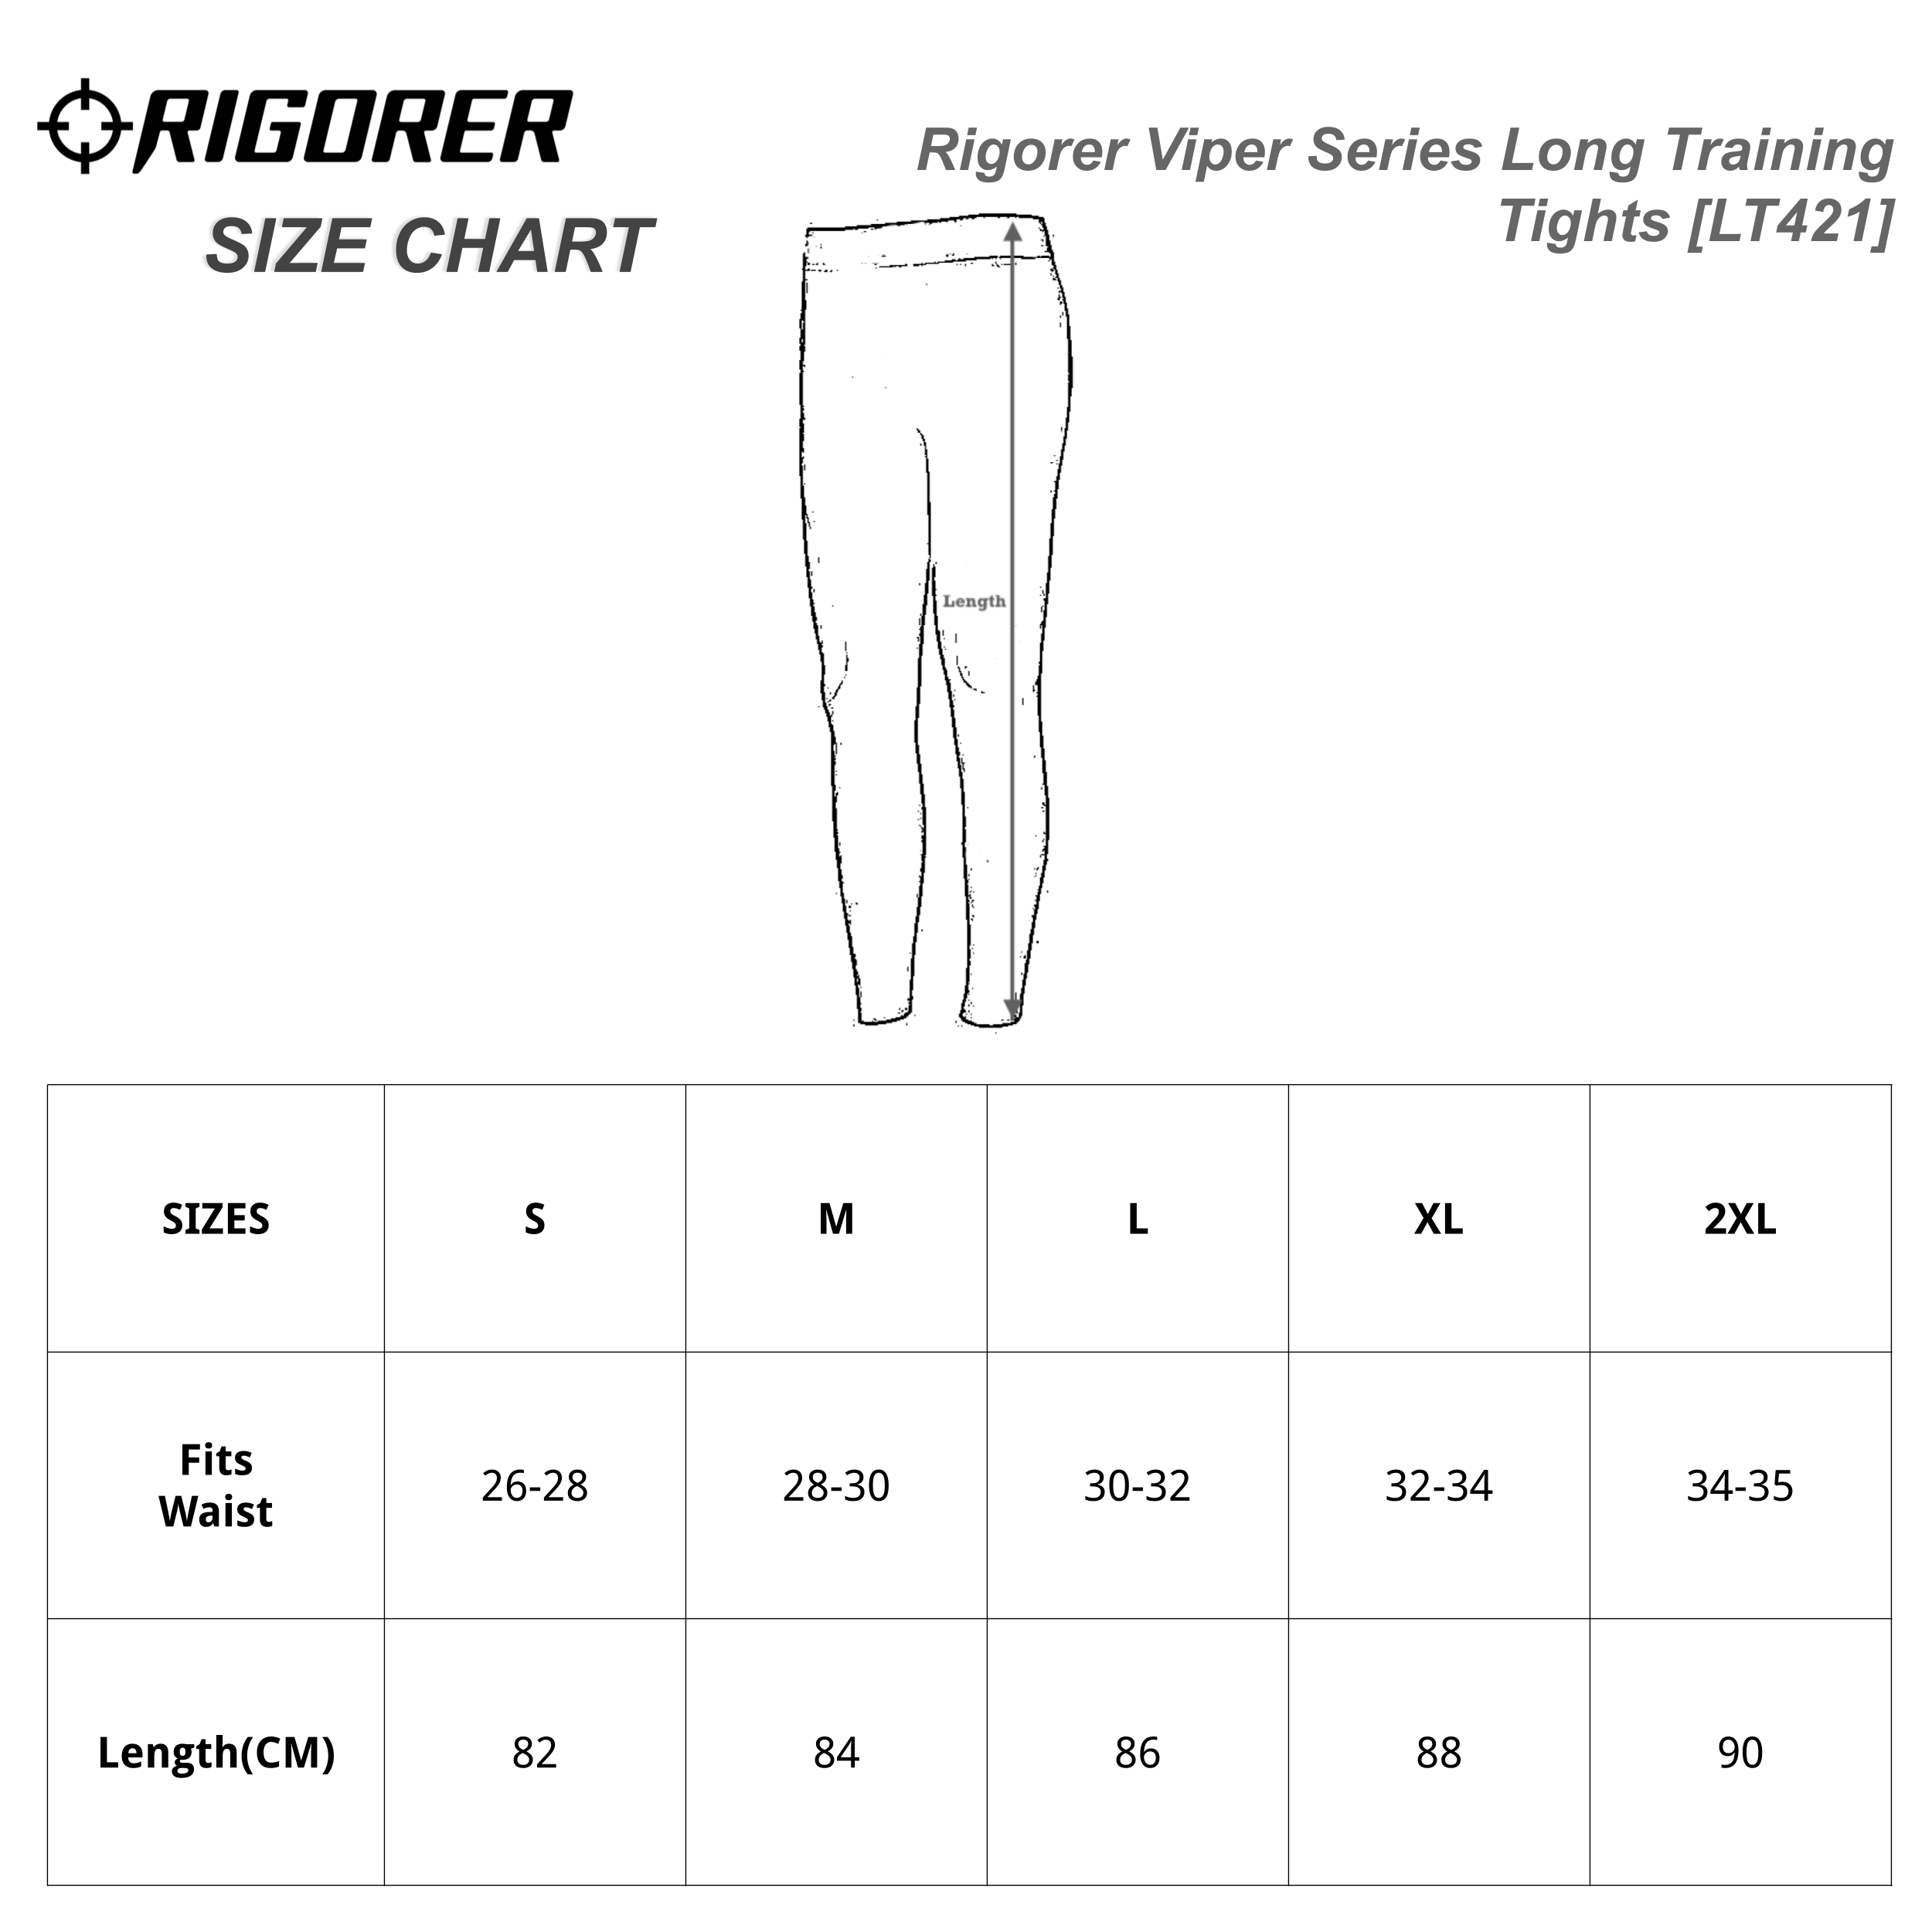 Rigorer Viper Series Long Training Tights [LT421] SIZING CHART